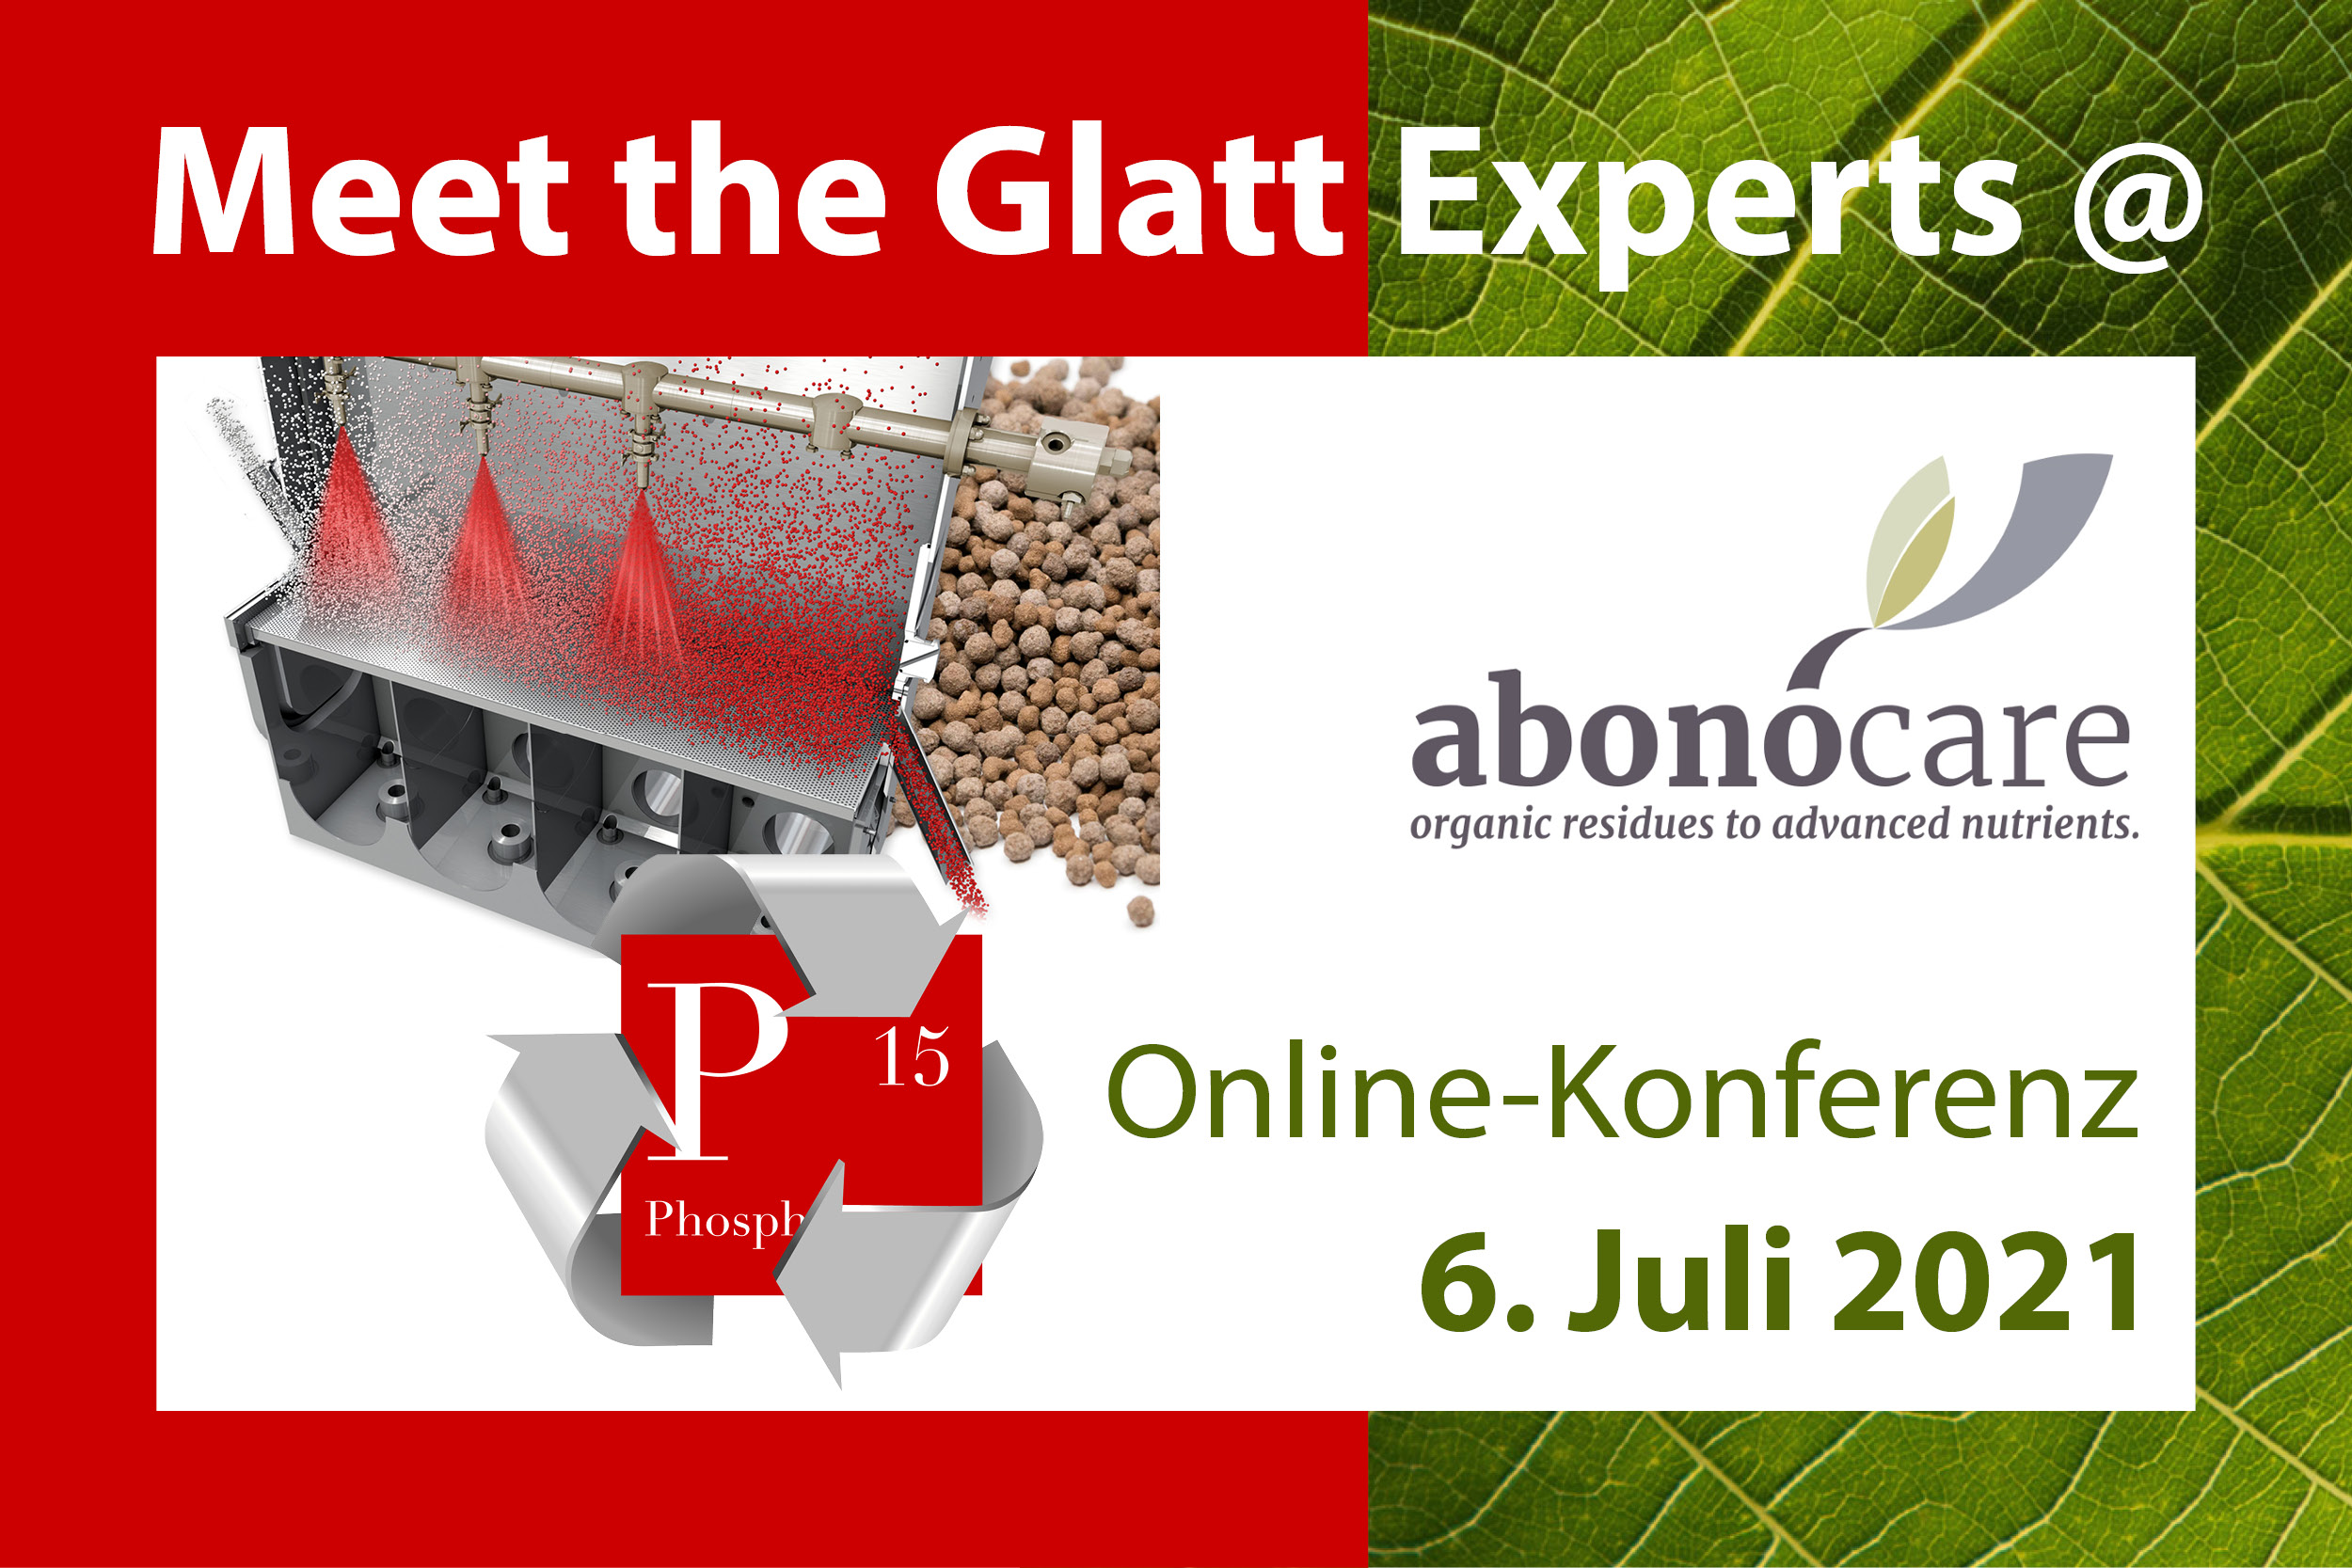 Meet the Glatt experts at the abonocare online conference on July 6, 2021